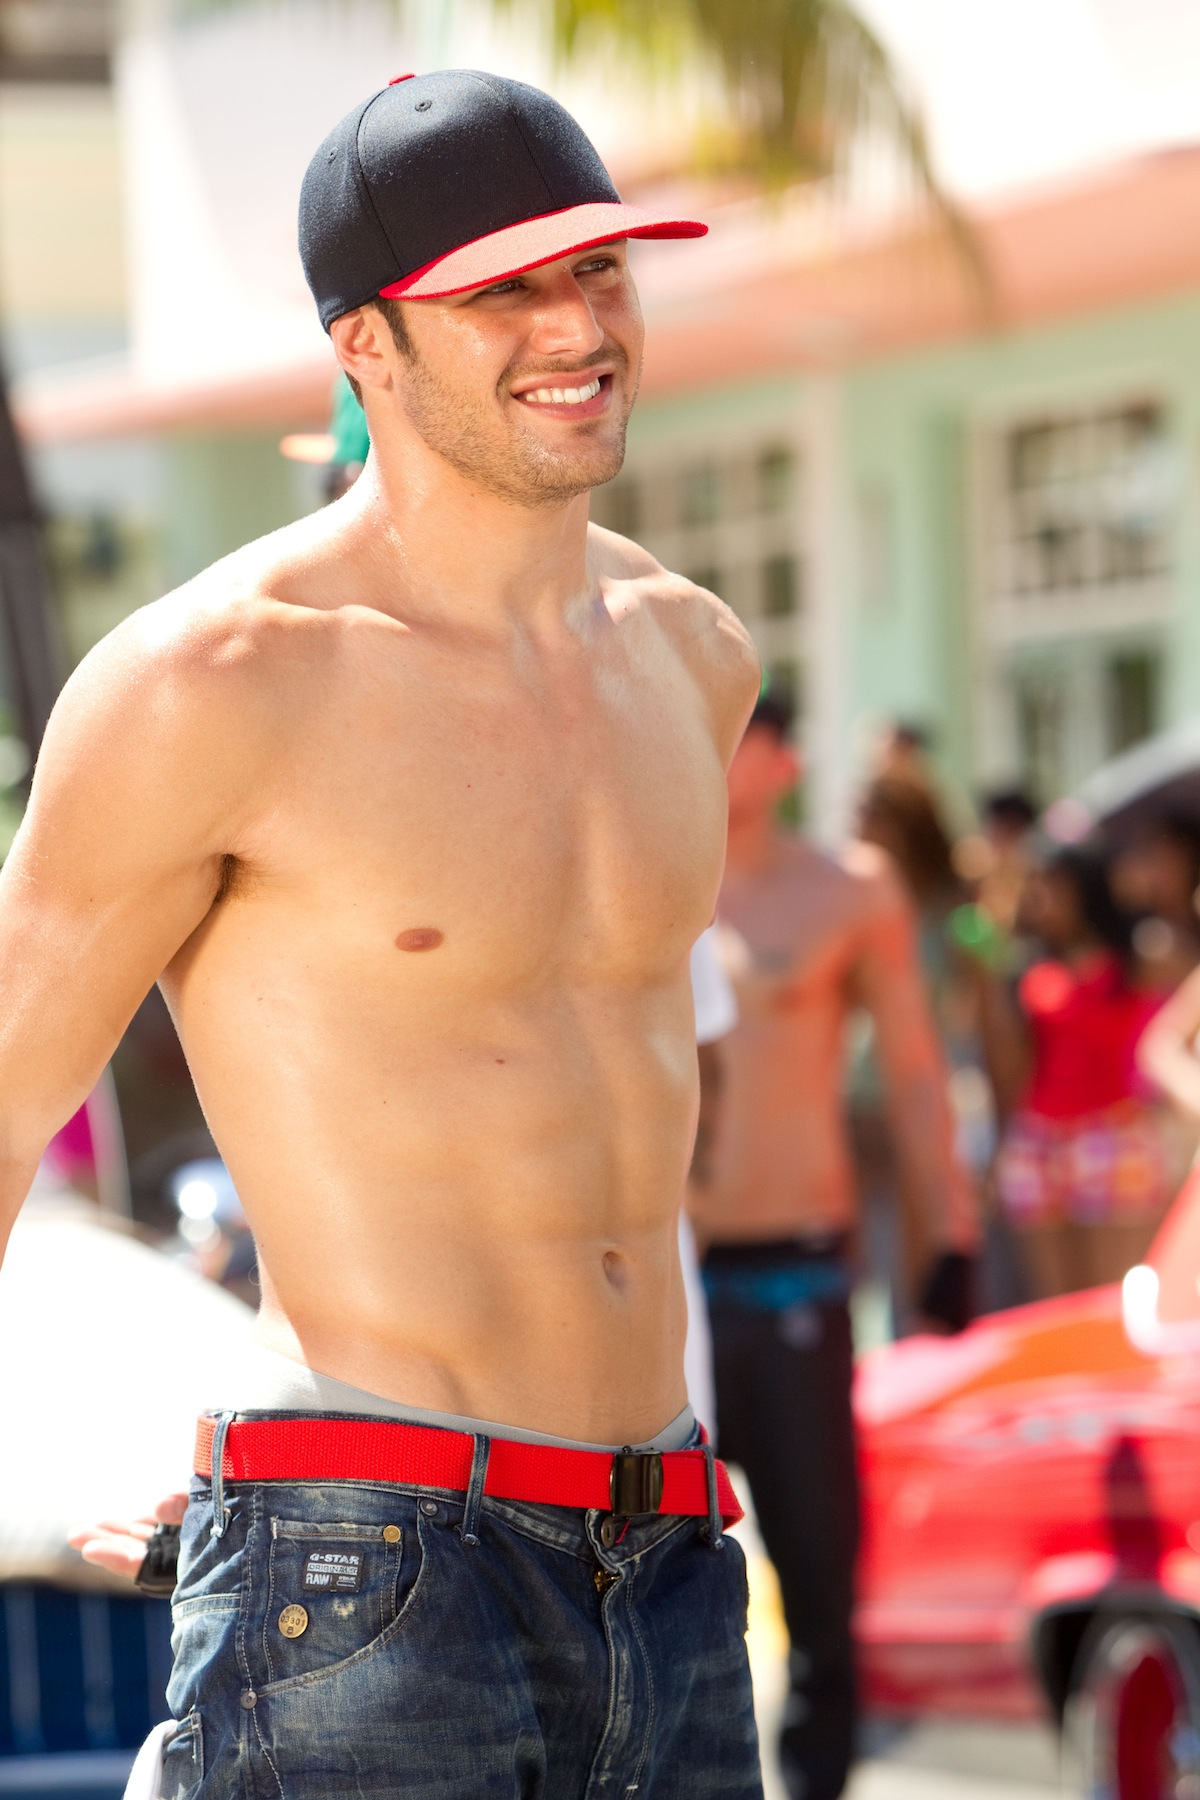 Step Up star Ryan Guzman, sexy Ryan Guzman photos, hottest pictures of Ryan Guzman, sexiest Ryan Guzman Photos, movies/tv, celebs